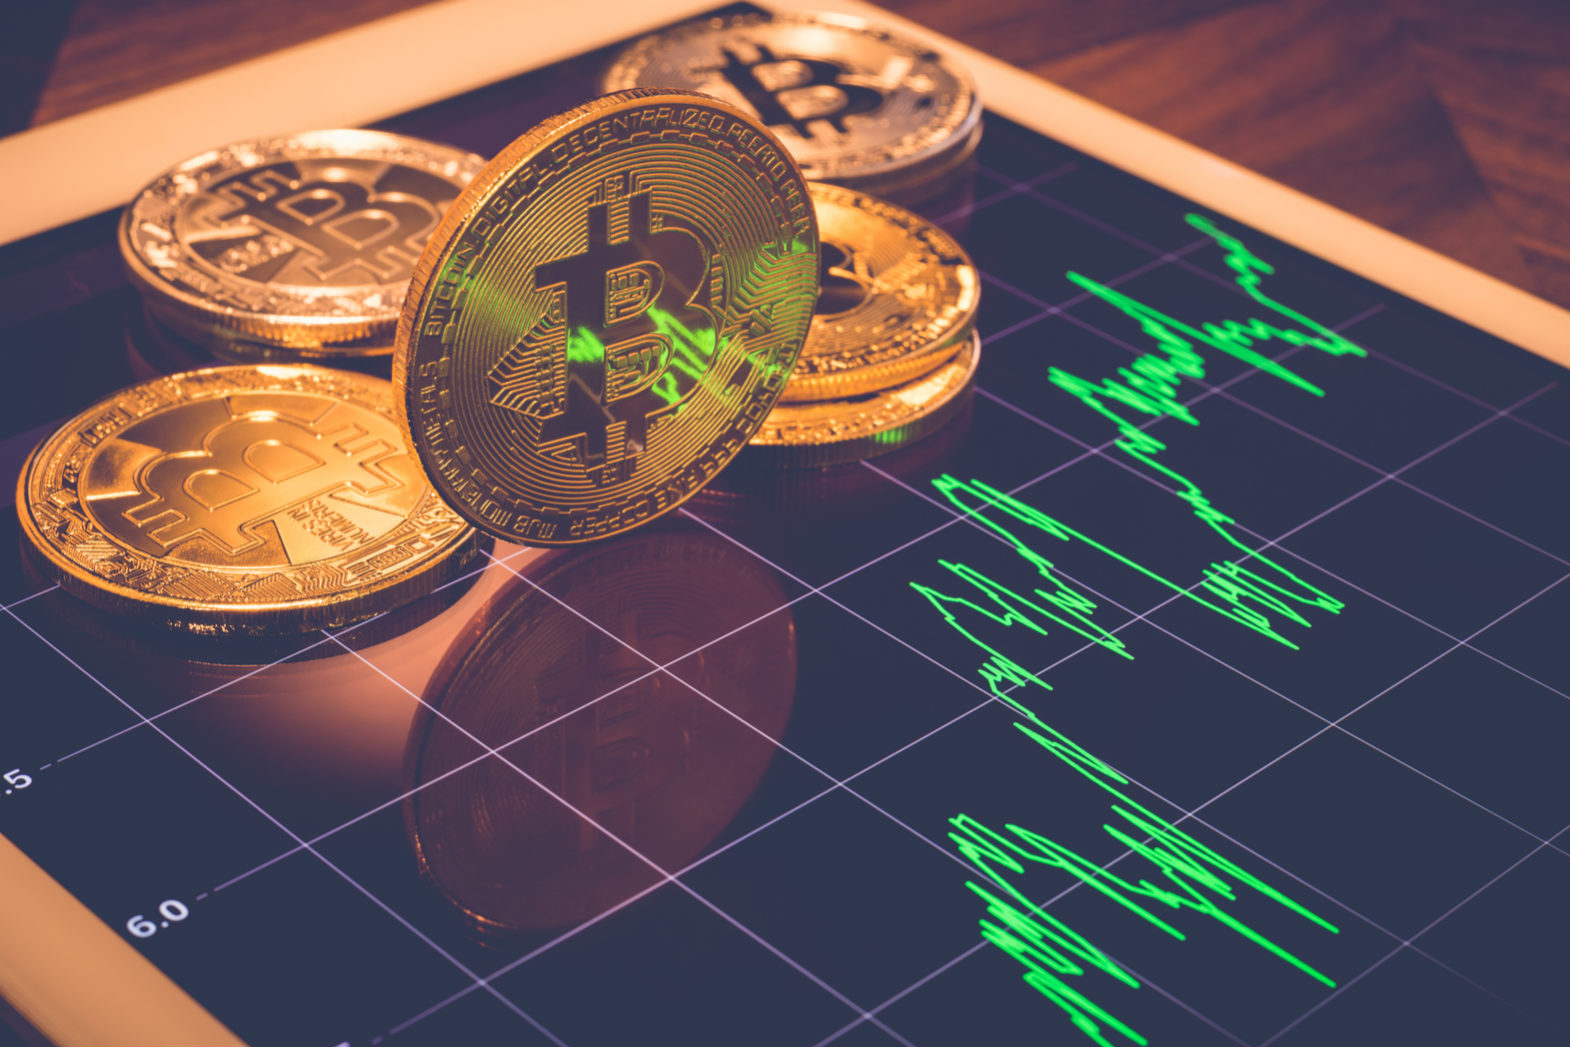 Bitcoin price to rise in line with coronavirus spread: Expert